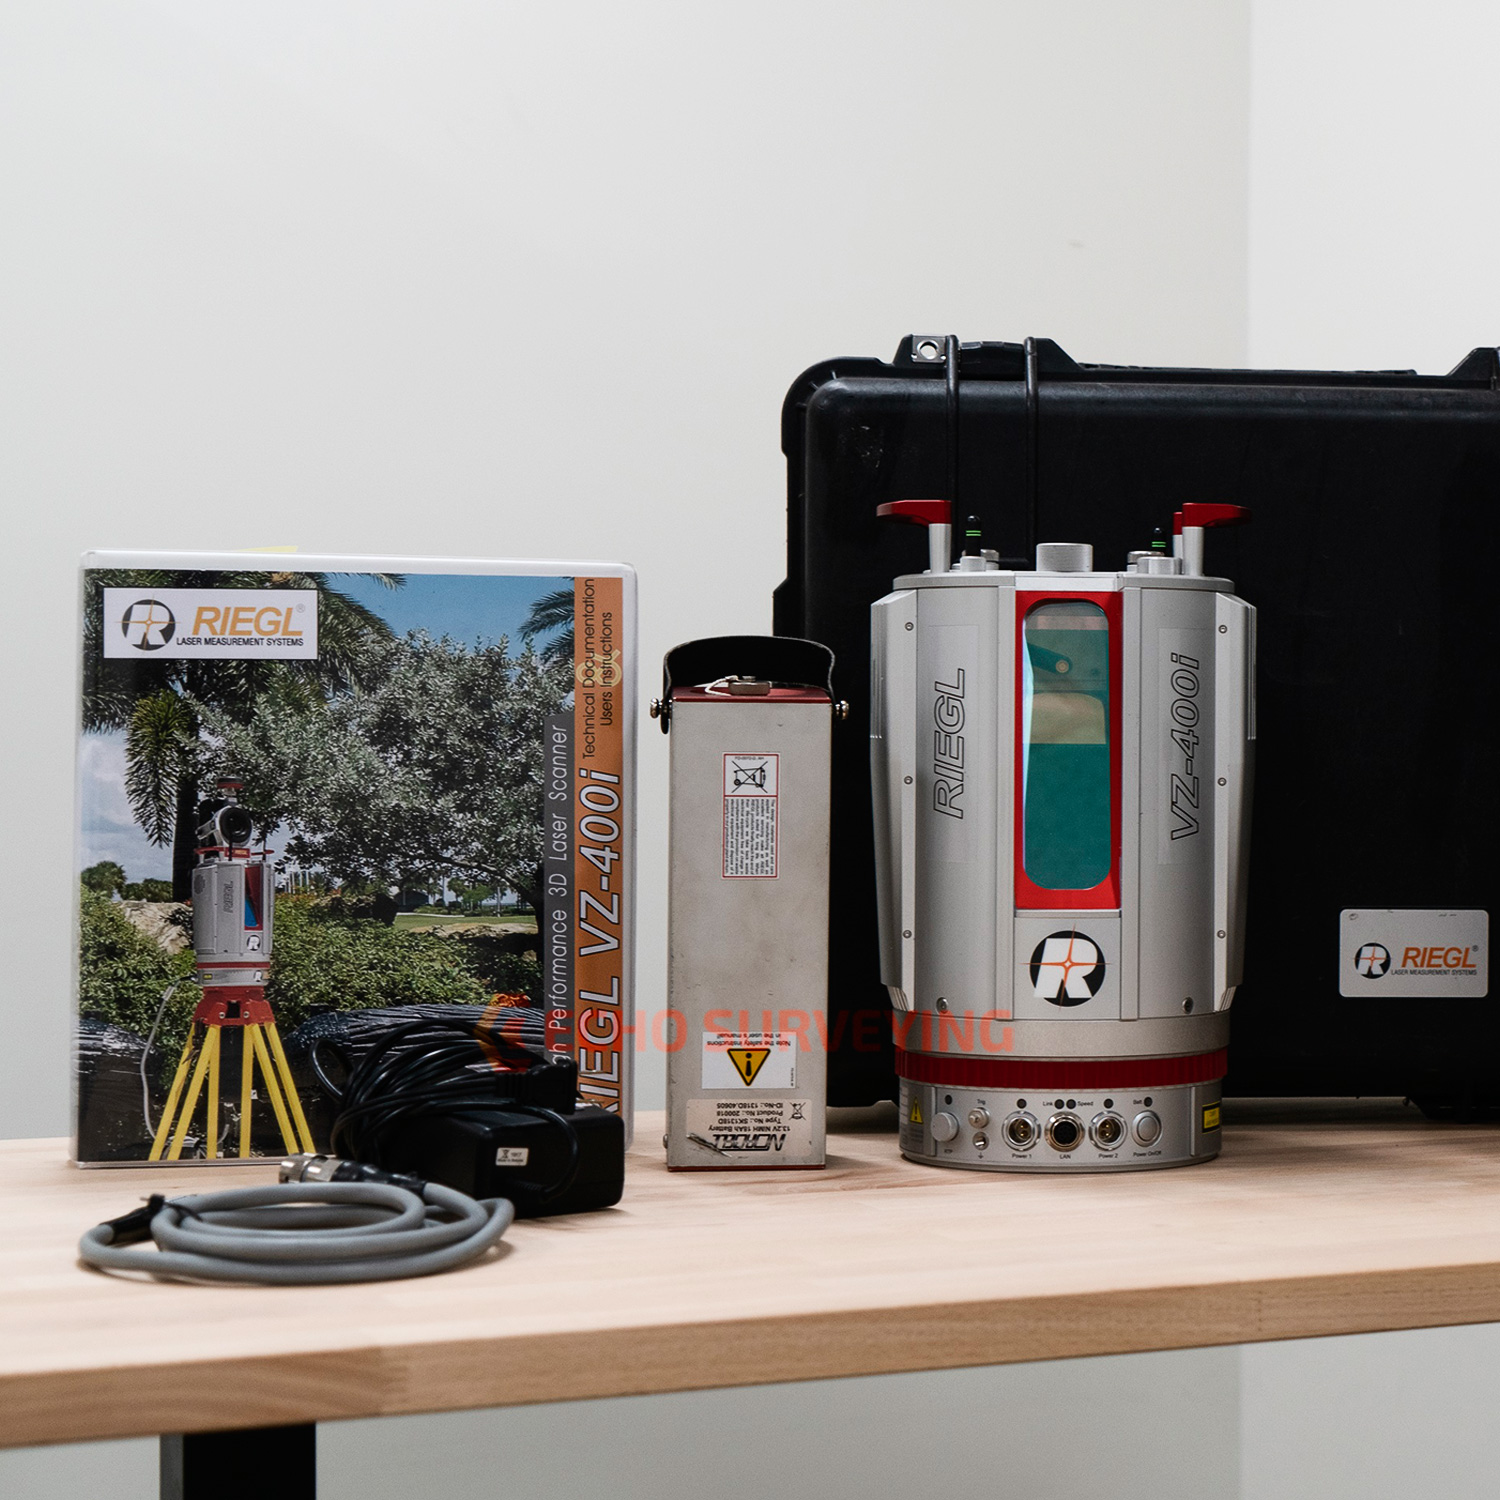 Used-RIEGL-VZ-400i-for-sale.jpg